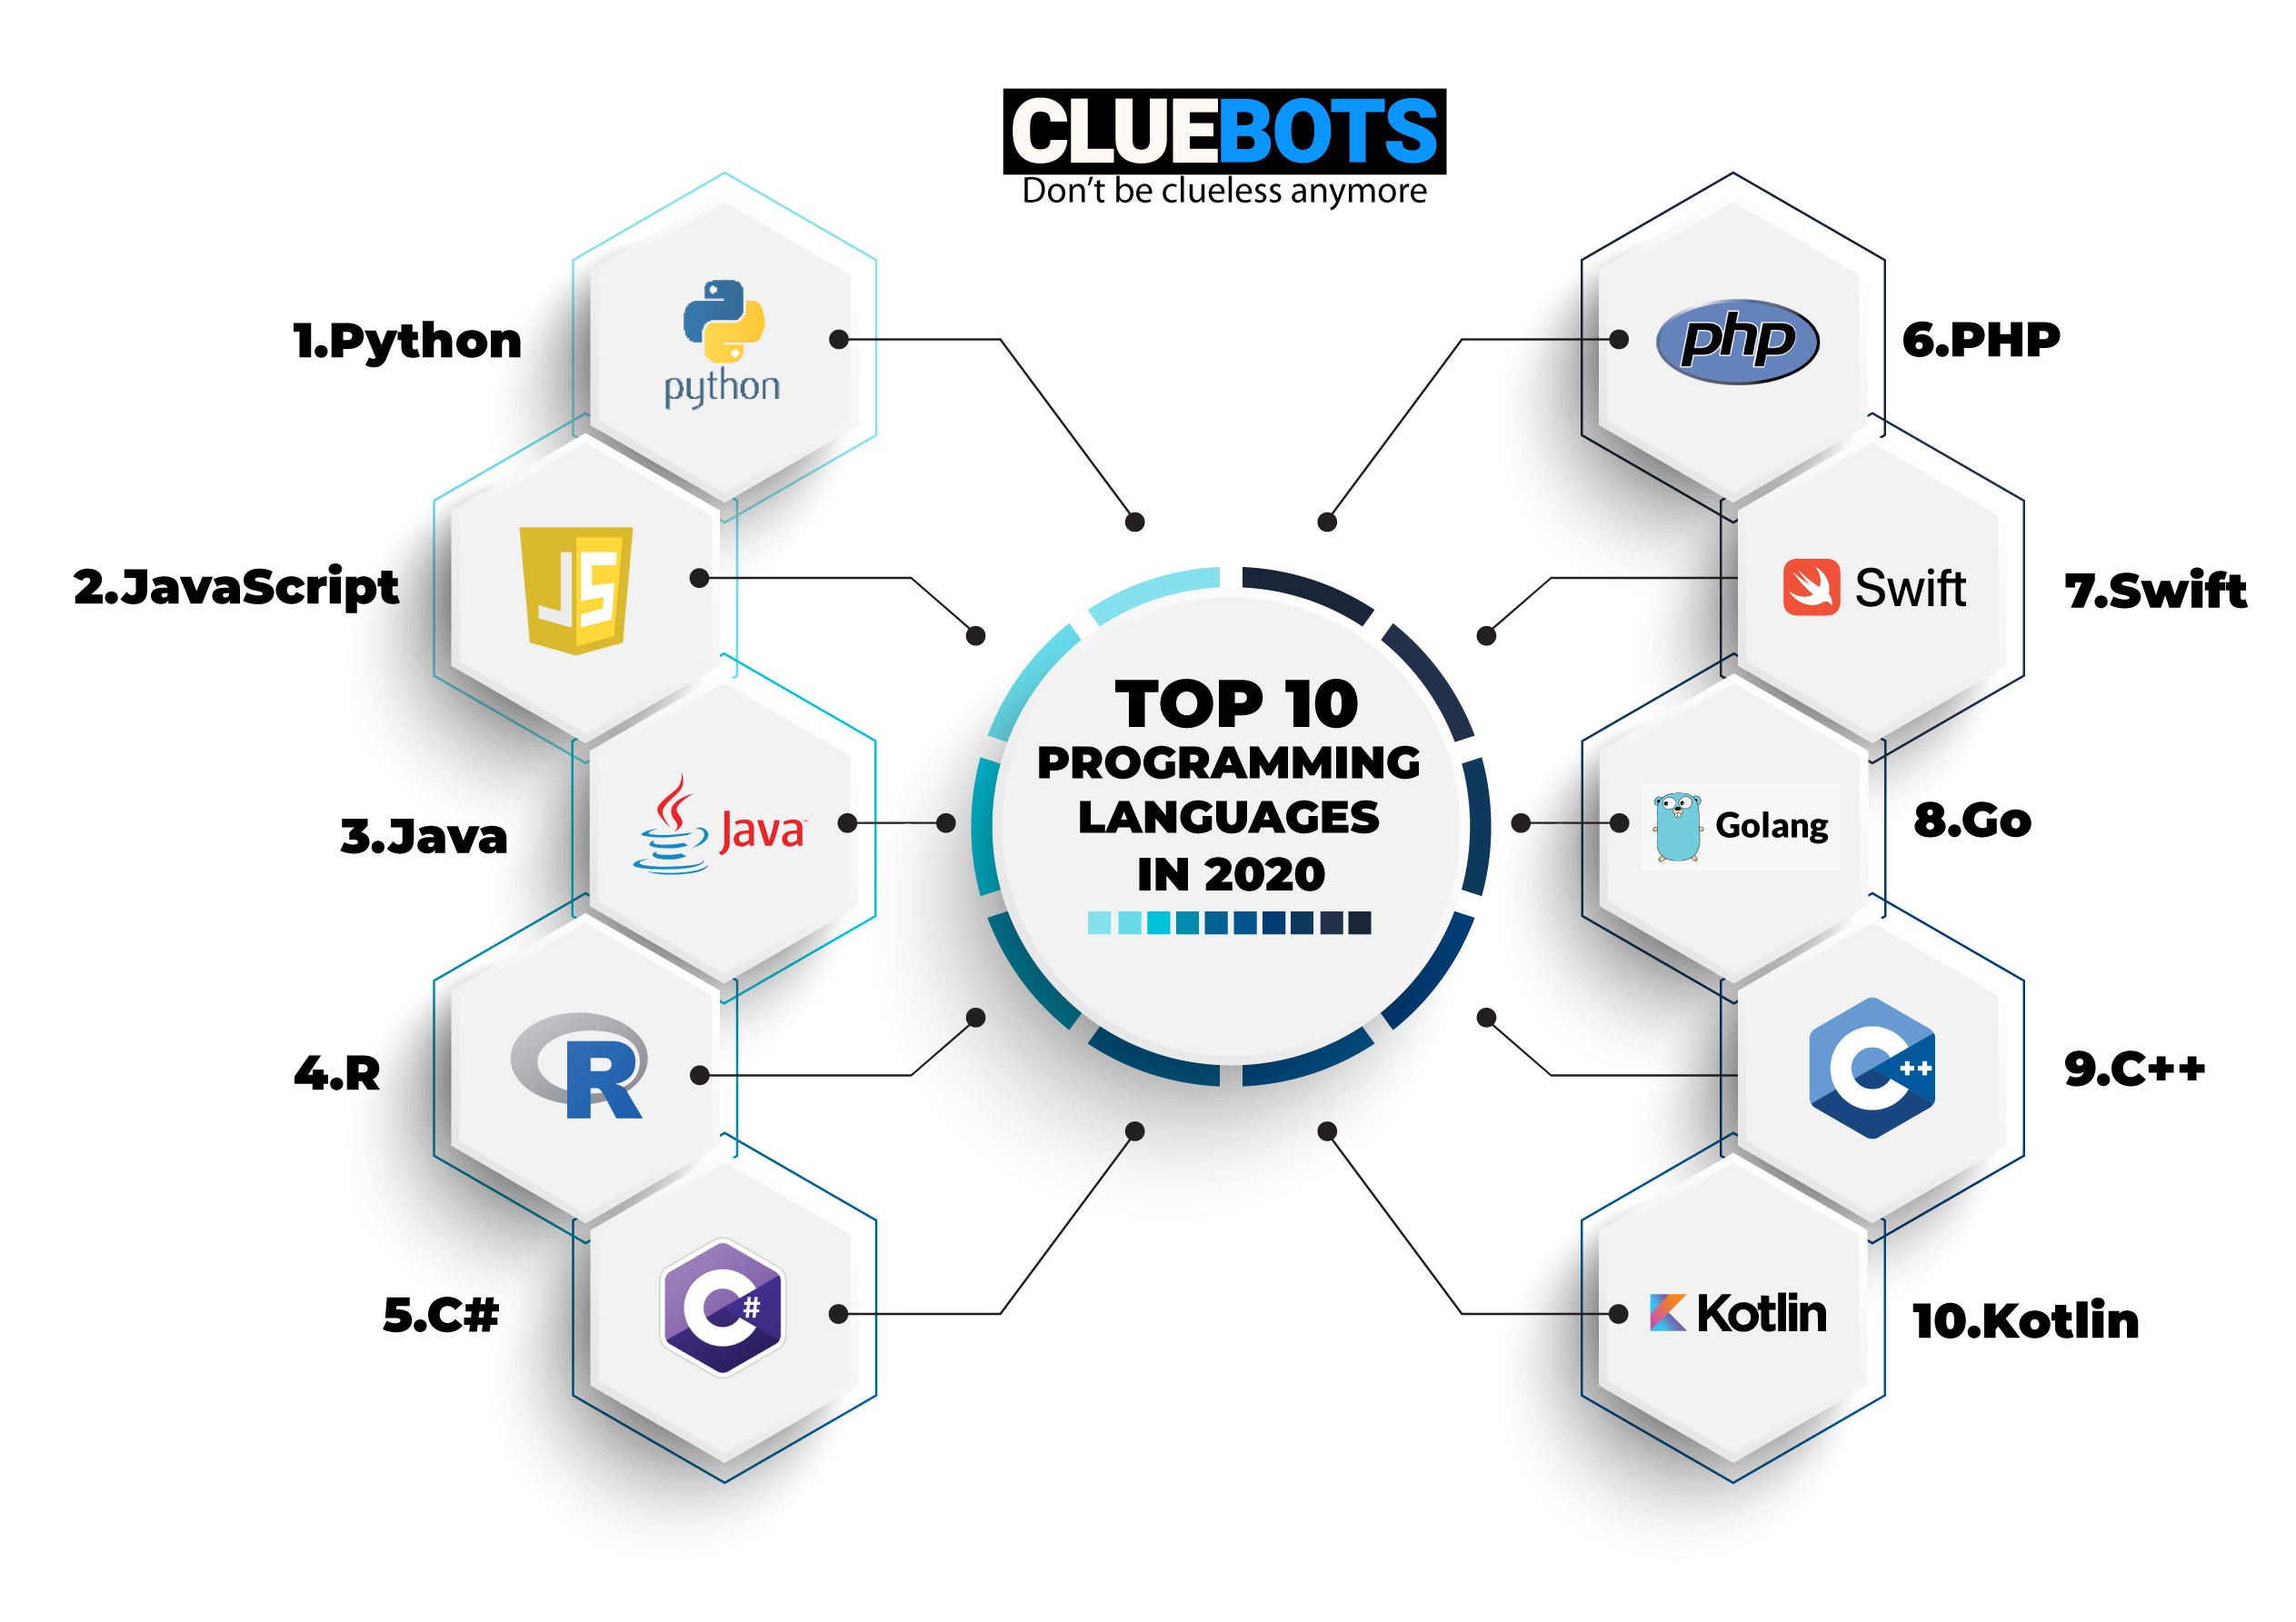 Top 10 Programming Languages in 2020